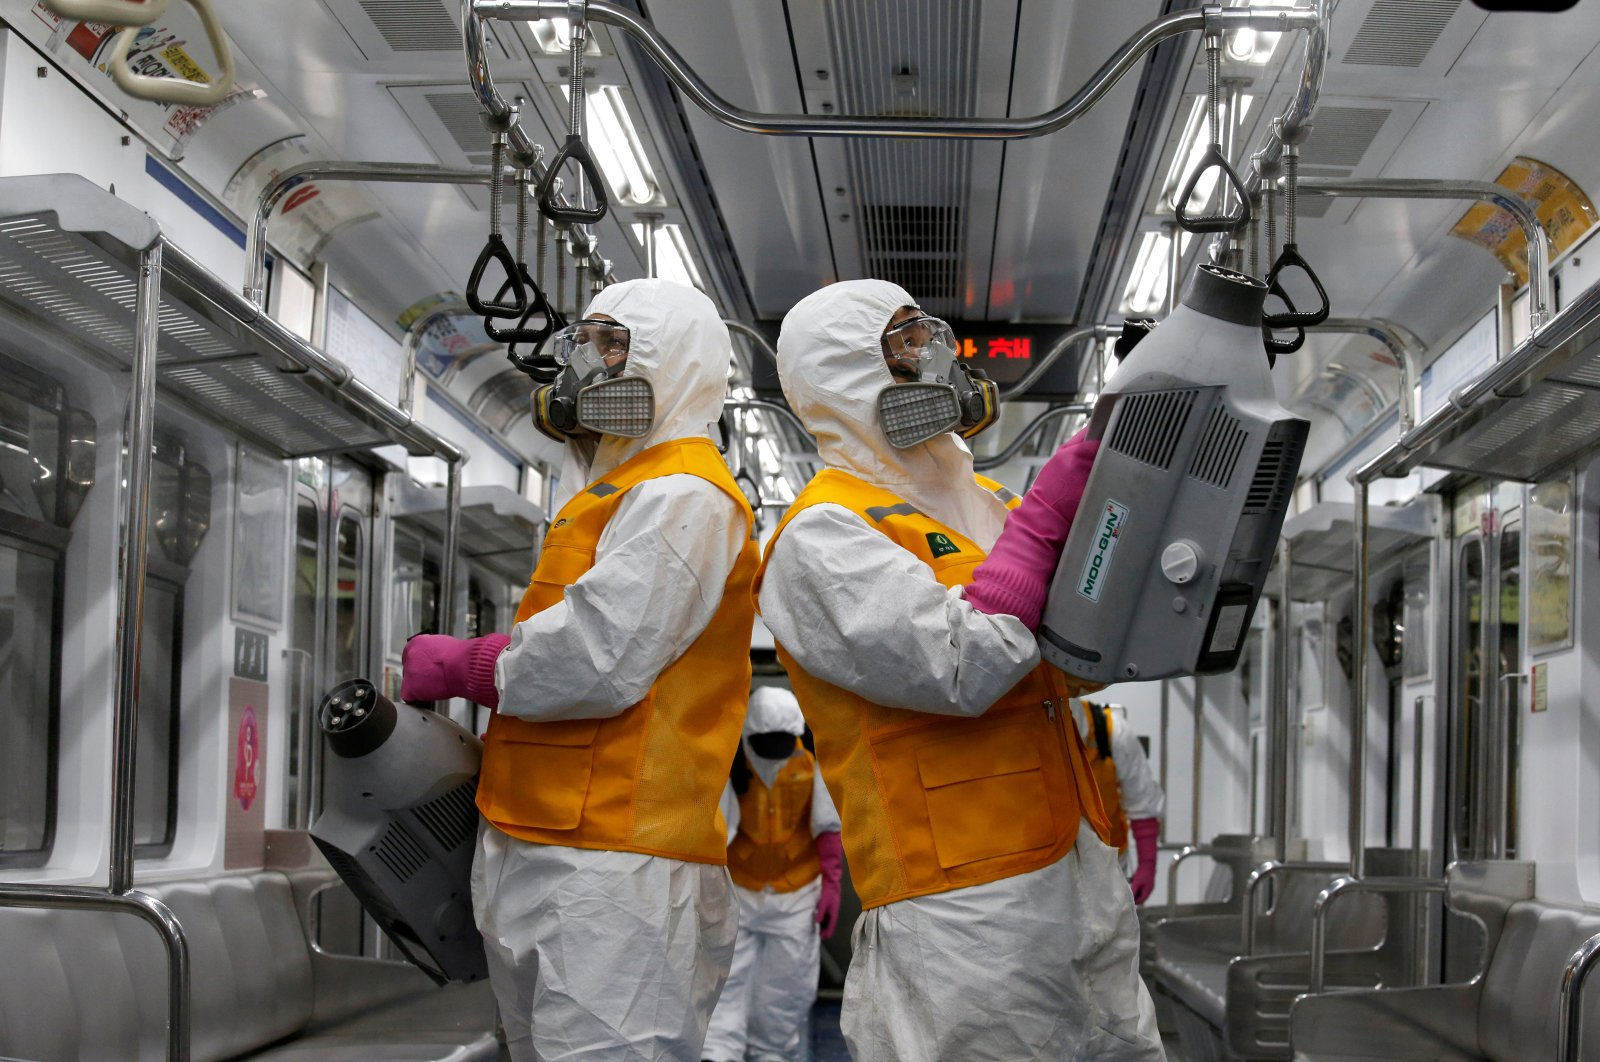 Employees from a disinfection service sanitize a subway car depot amid coronavirus fears in Seoul, South Korea, March 11, 2020. (REUTERS Photo)